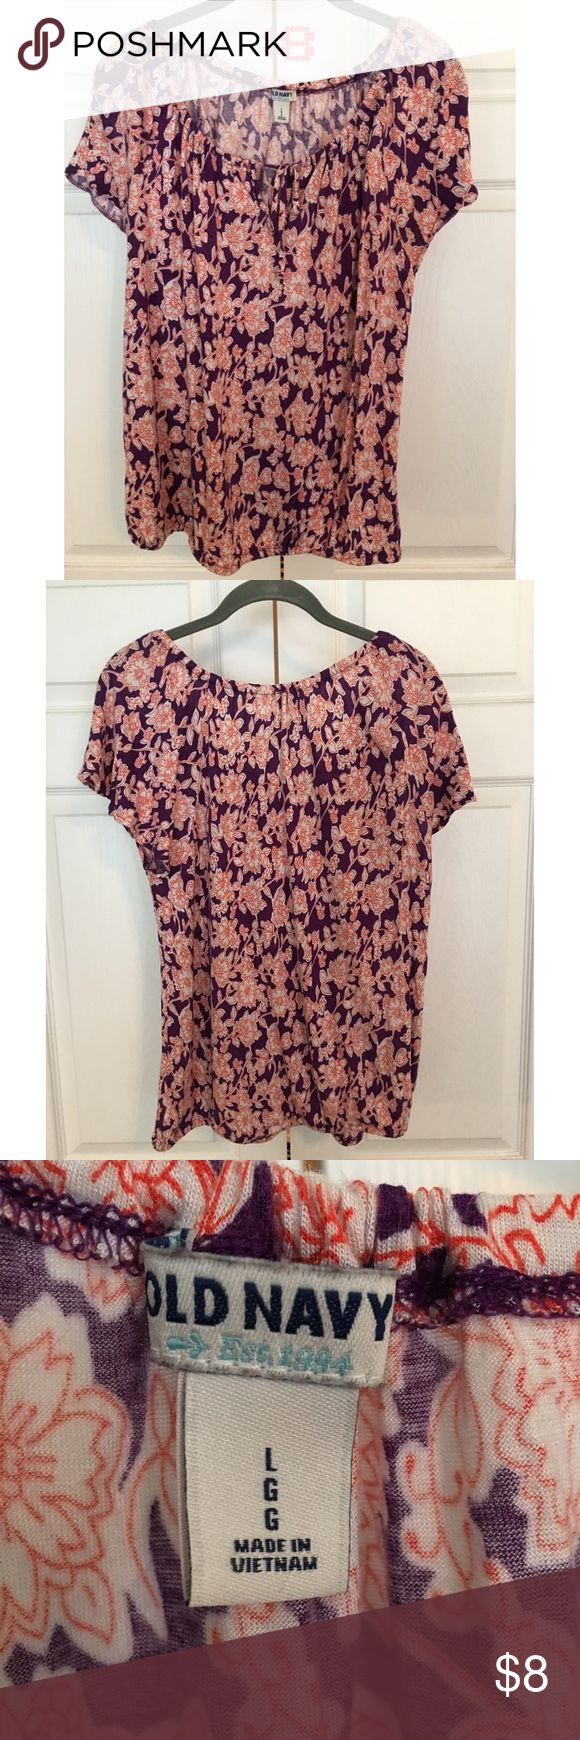 Print short sleeved top Old Navy Large Plum printed, capped sleeve, elastic bottom, draw string collar, Old Navy Large, Short sleeved tassel tie Rayon Old Navy Tops Blouses